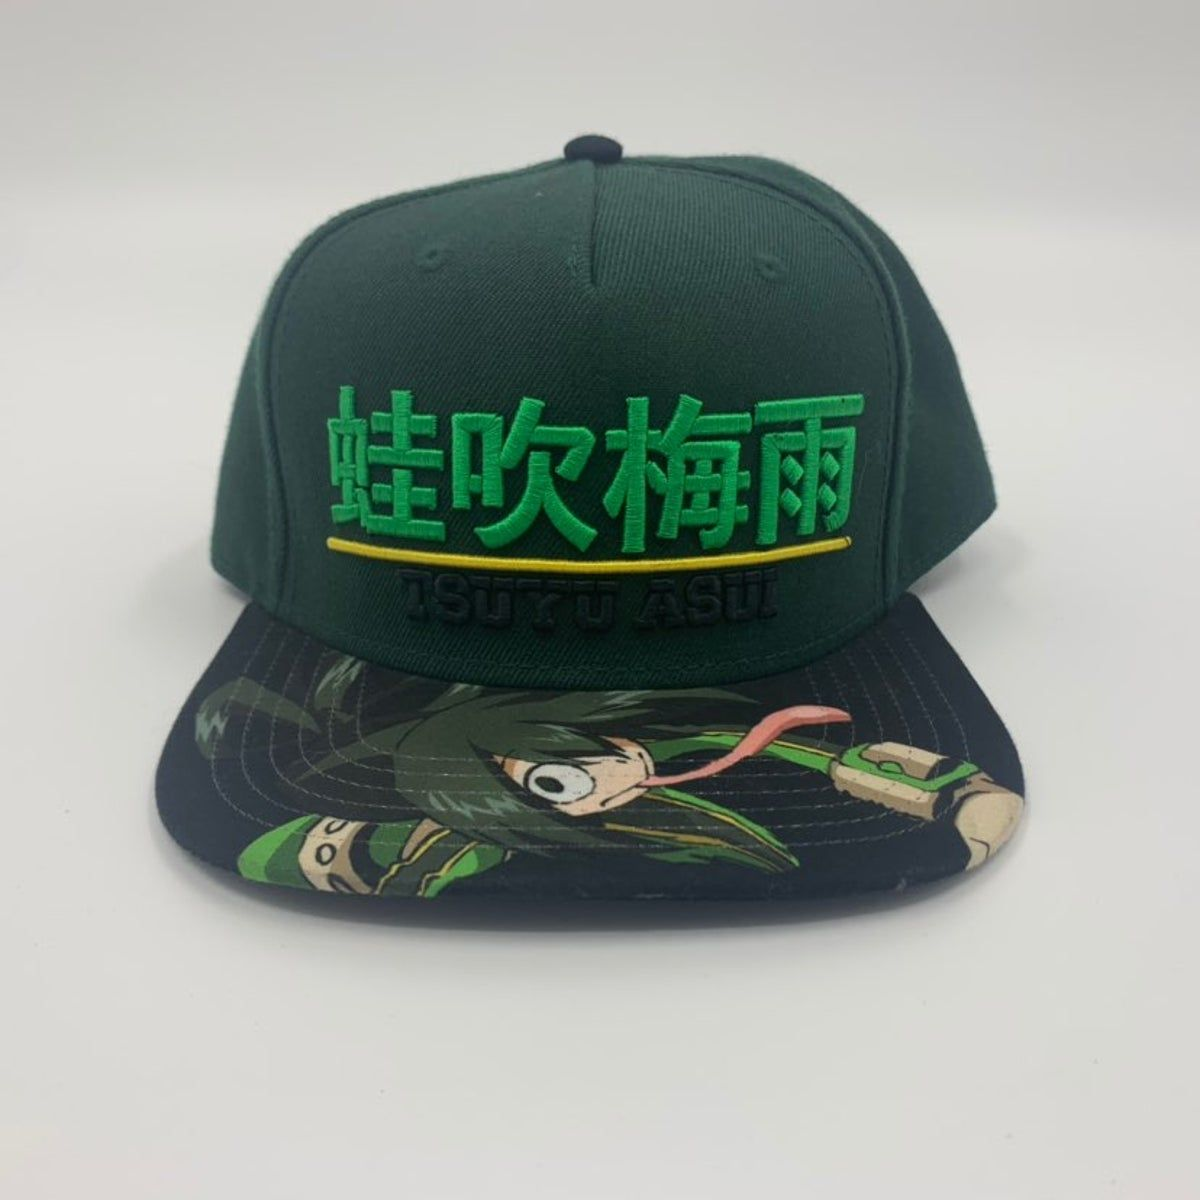 Officially Licensed NEW My Hero Academia PLUS ULTRA Sublimated Hat